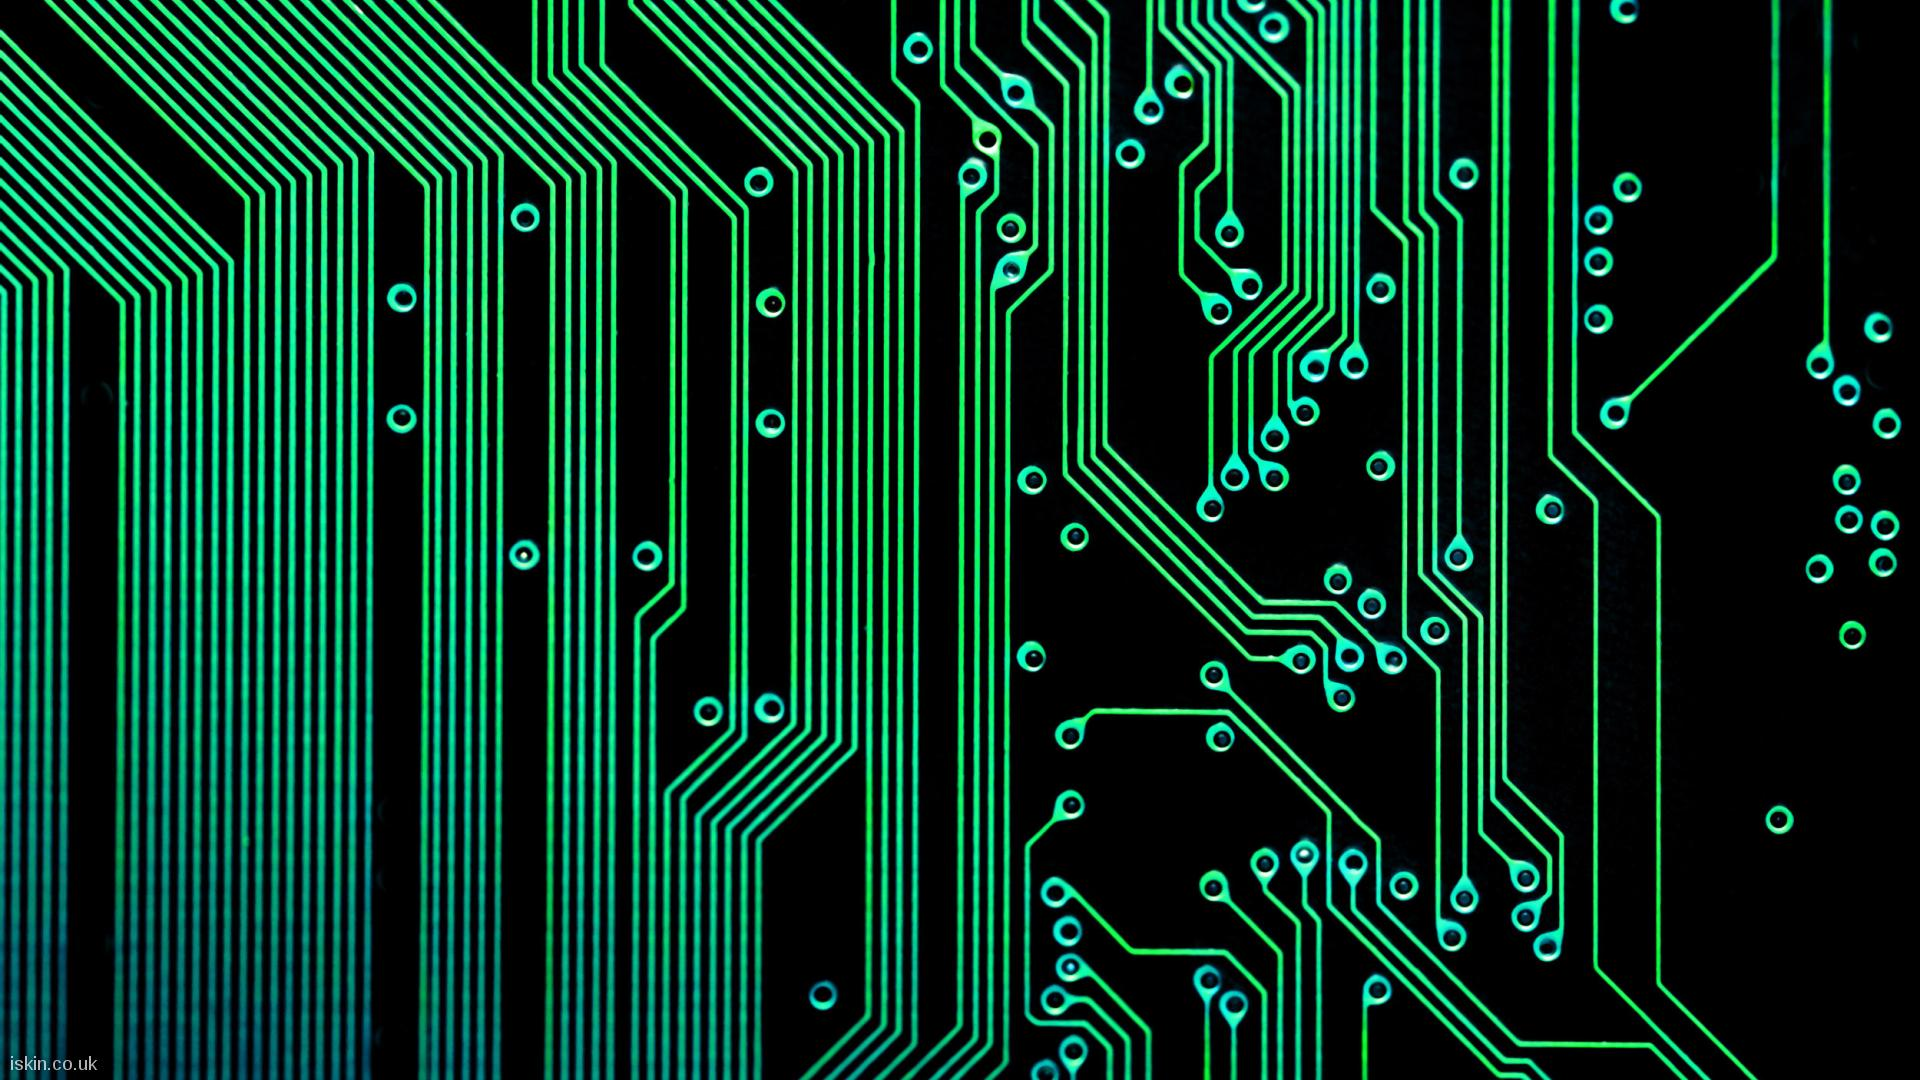 Electronic Circuits Desktop Wallpaper  Iskincouk